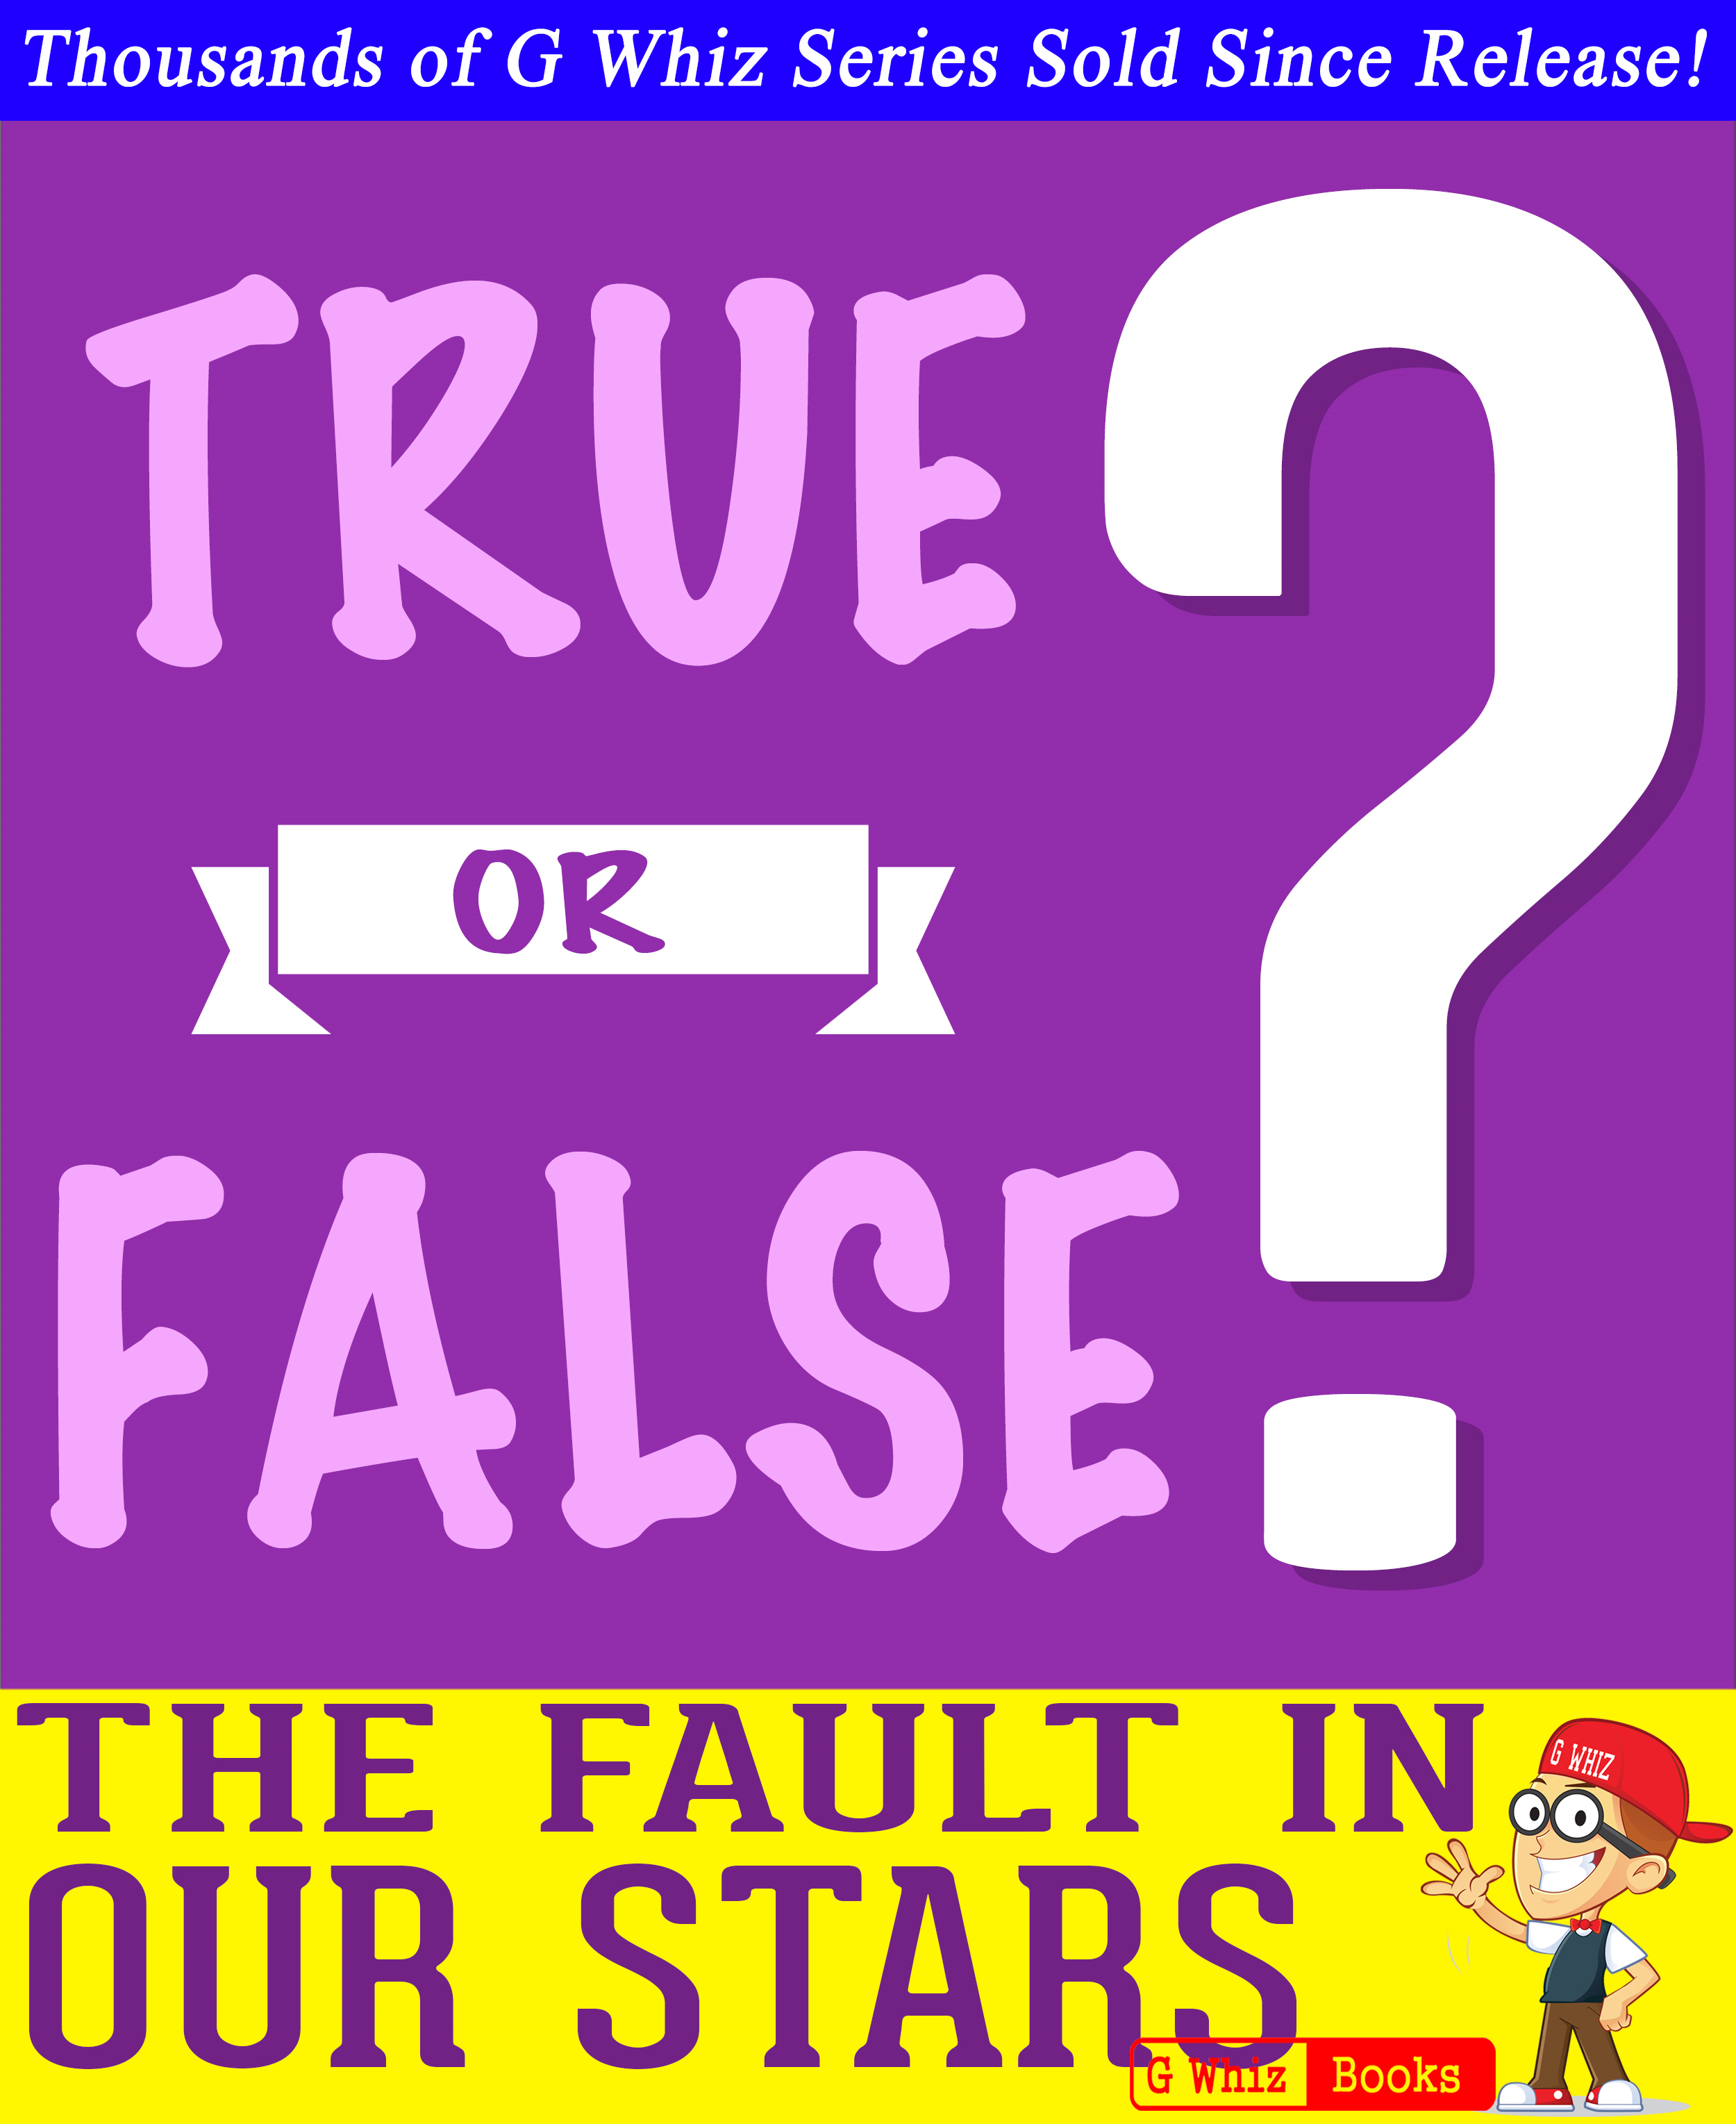 G Whiz - The Fault in Our Stars - True or False? G Whiz Quiz Game Book